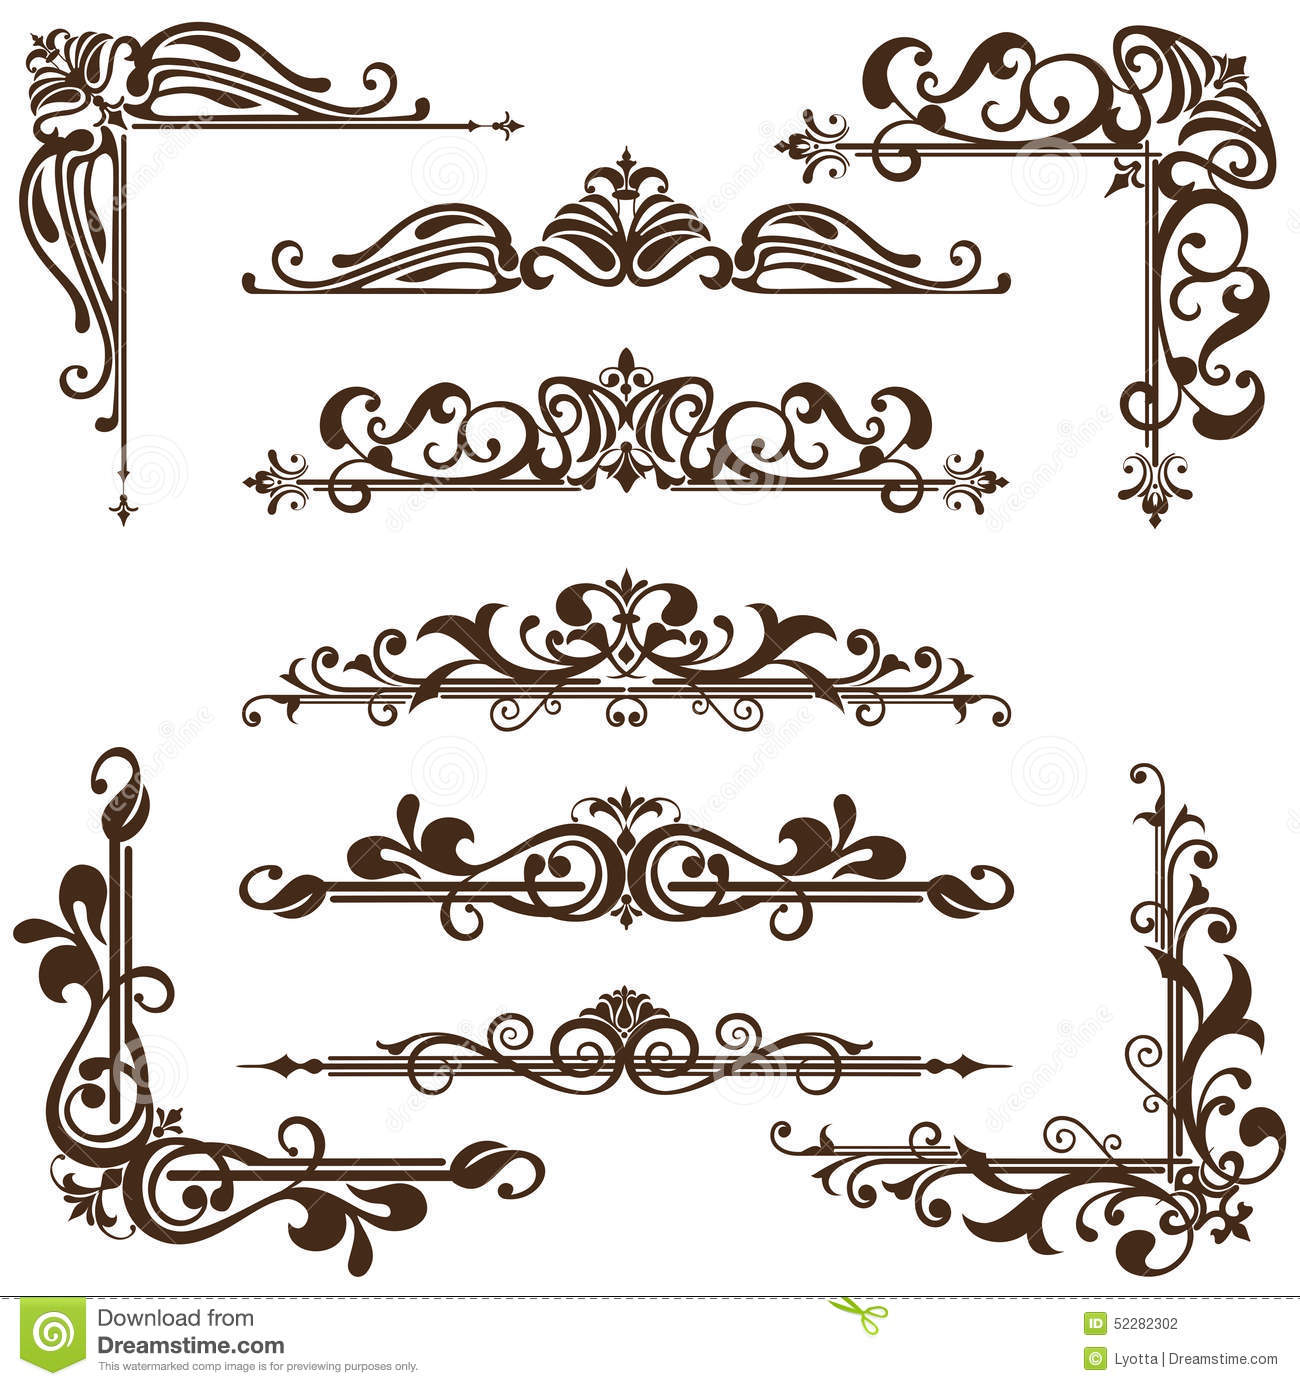 Download free vintage ornaments vintage ornaments and iders - Royalty Free Vector Download Vector Vintage Ornaments